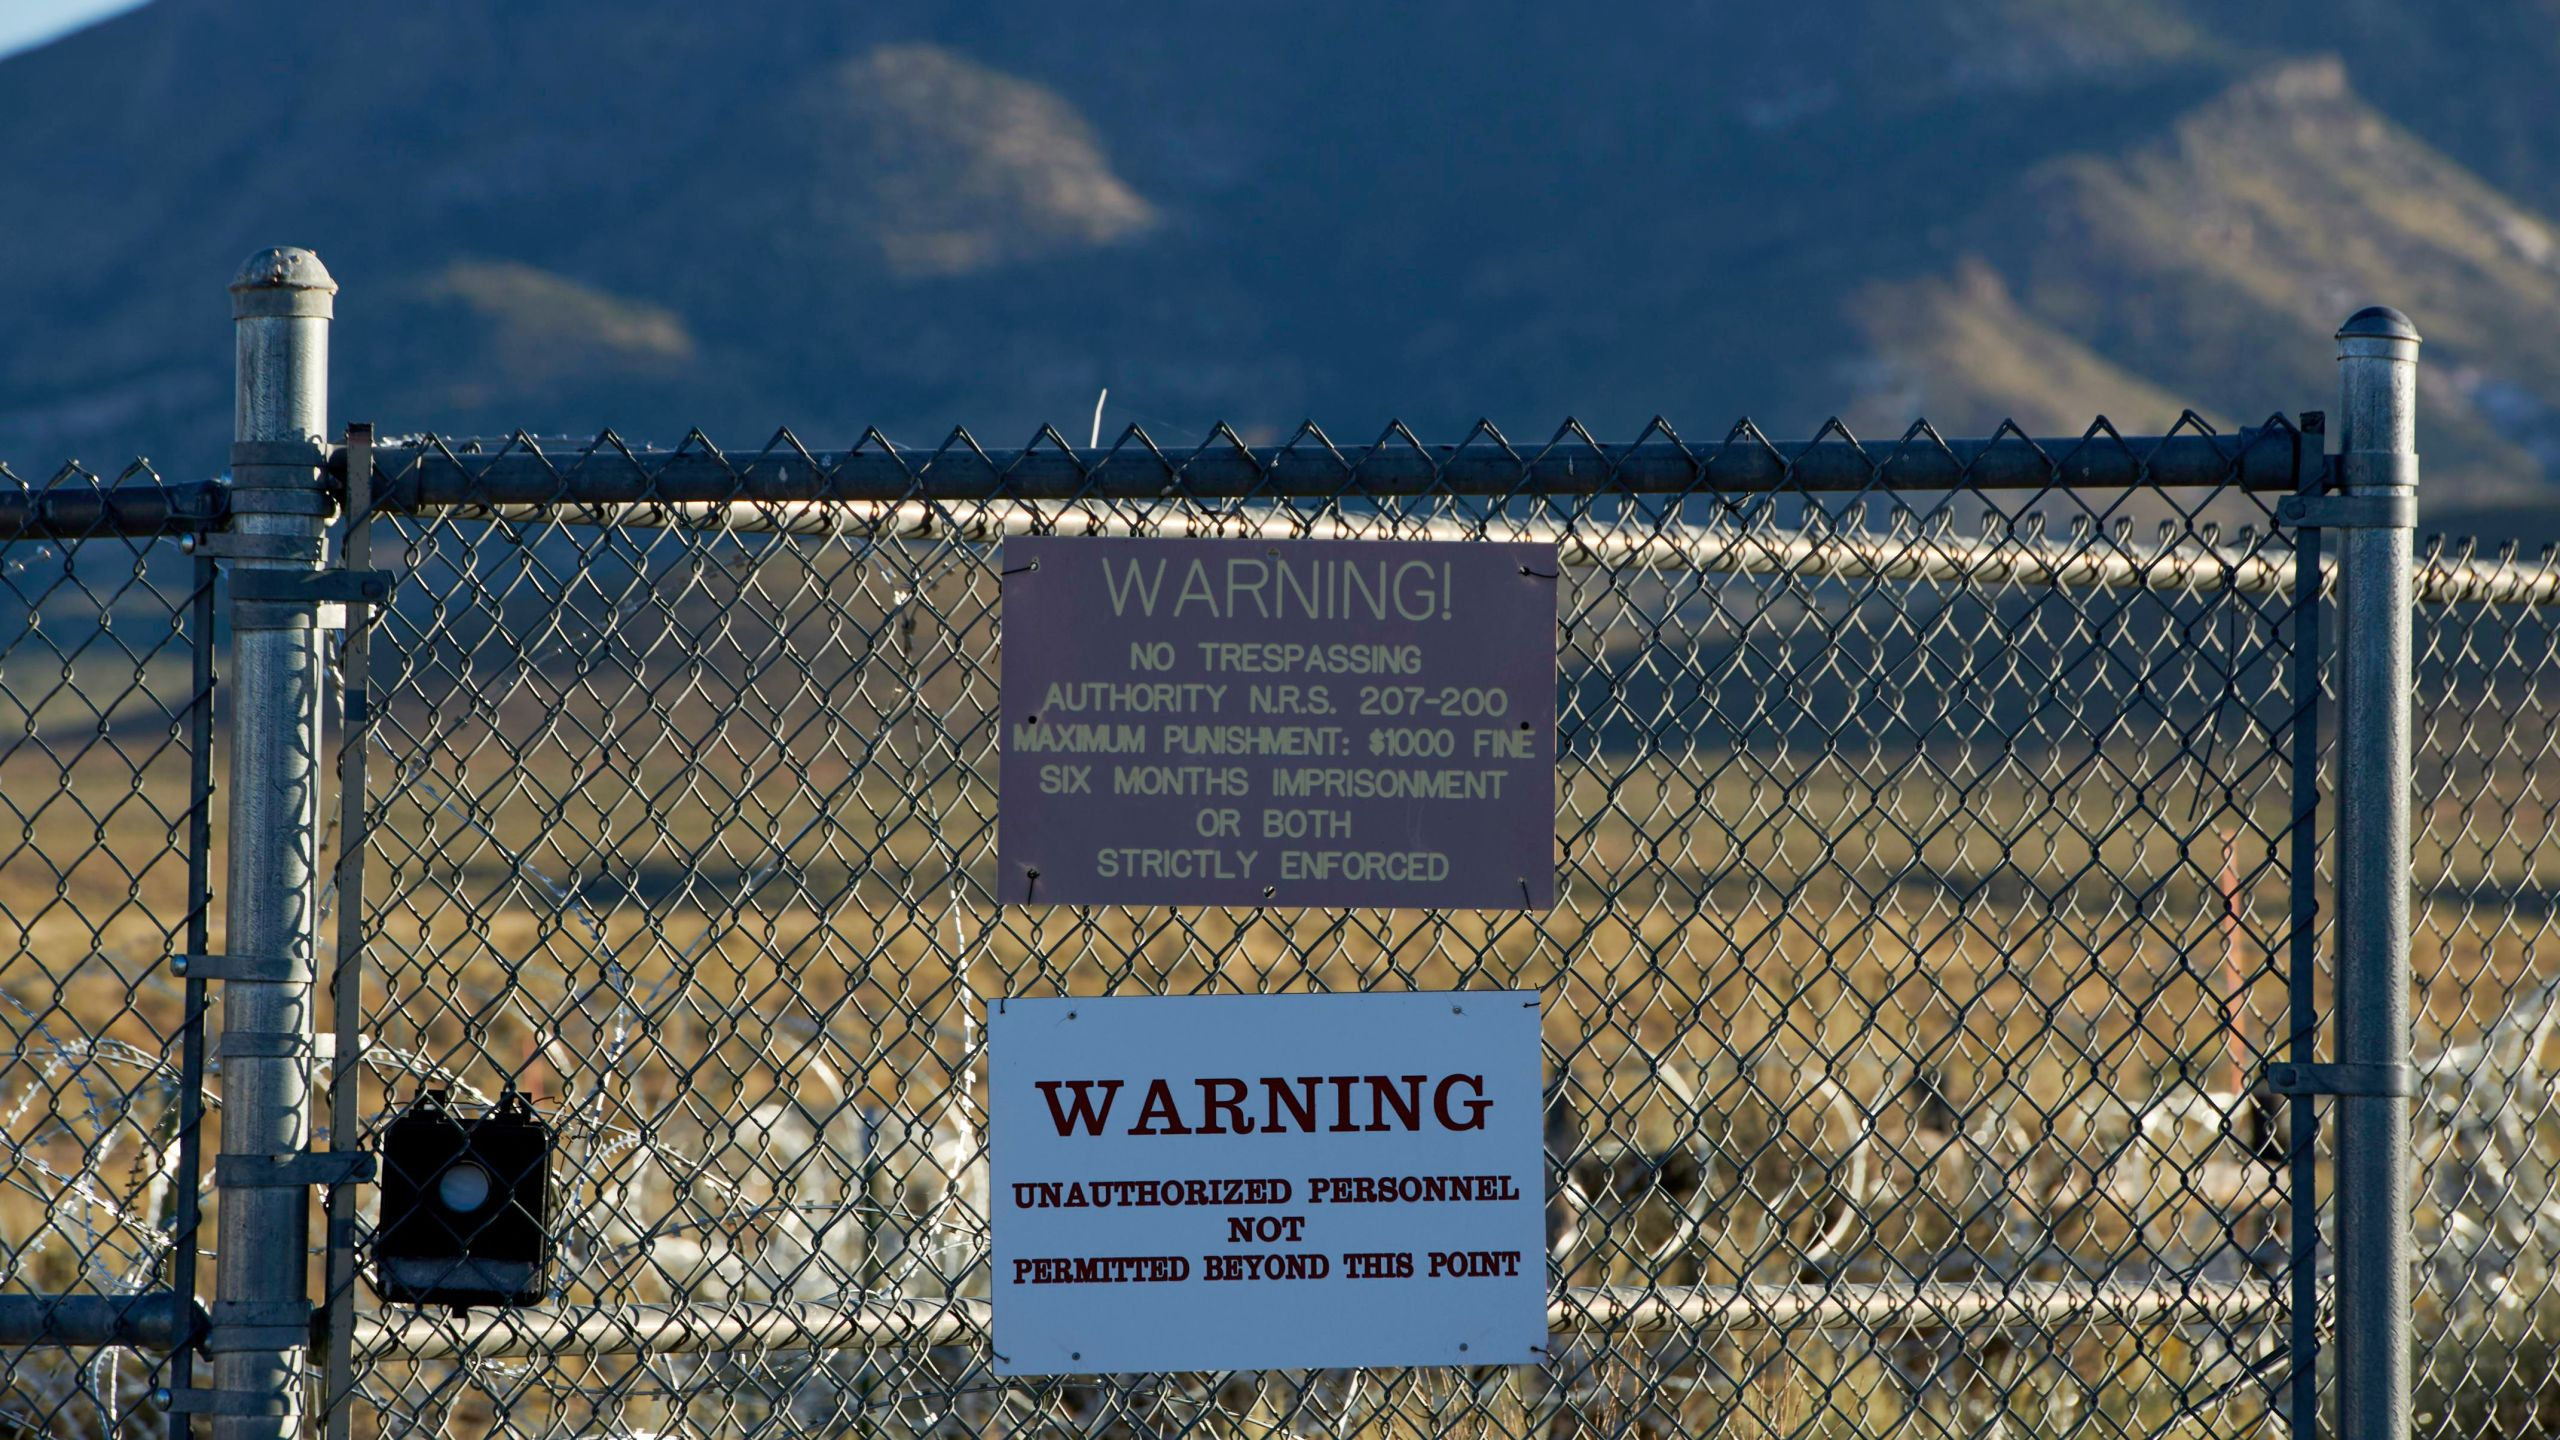 Signage is posted outside a gate of the Nevada Test and Training Range, commonly referred to as Area 51, near Rachel, Nevada, on September 13, 2019. (Credit: BRIDGET BENNETT/AFP/Getty Images)